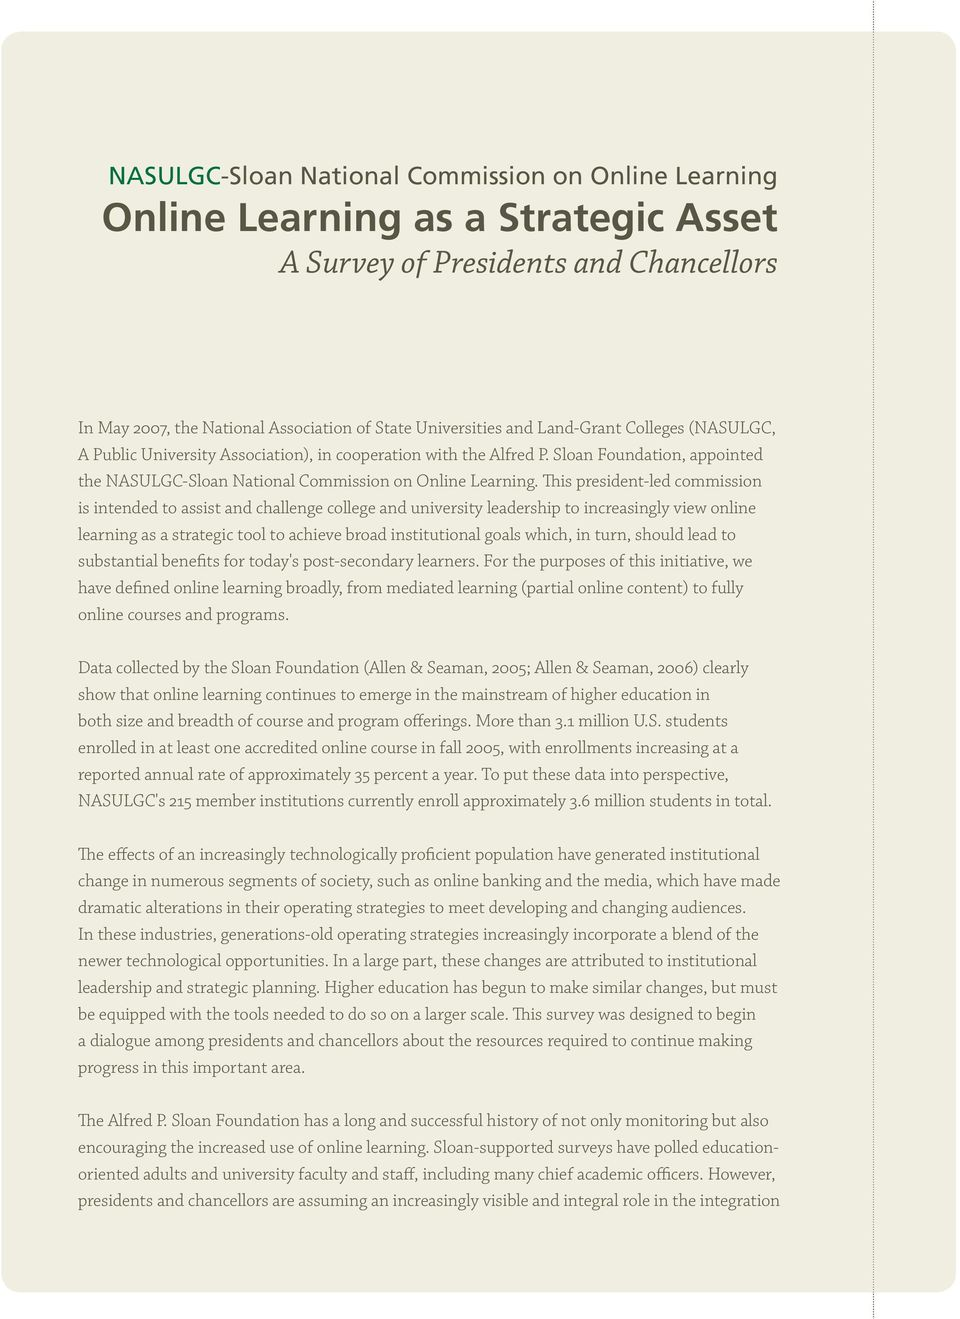 This president-led commission is intended to assist and challenge college and university leadership to increasingly view online learning as a strategic tool to achieve broad institutional goals